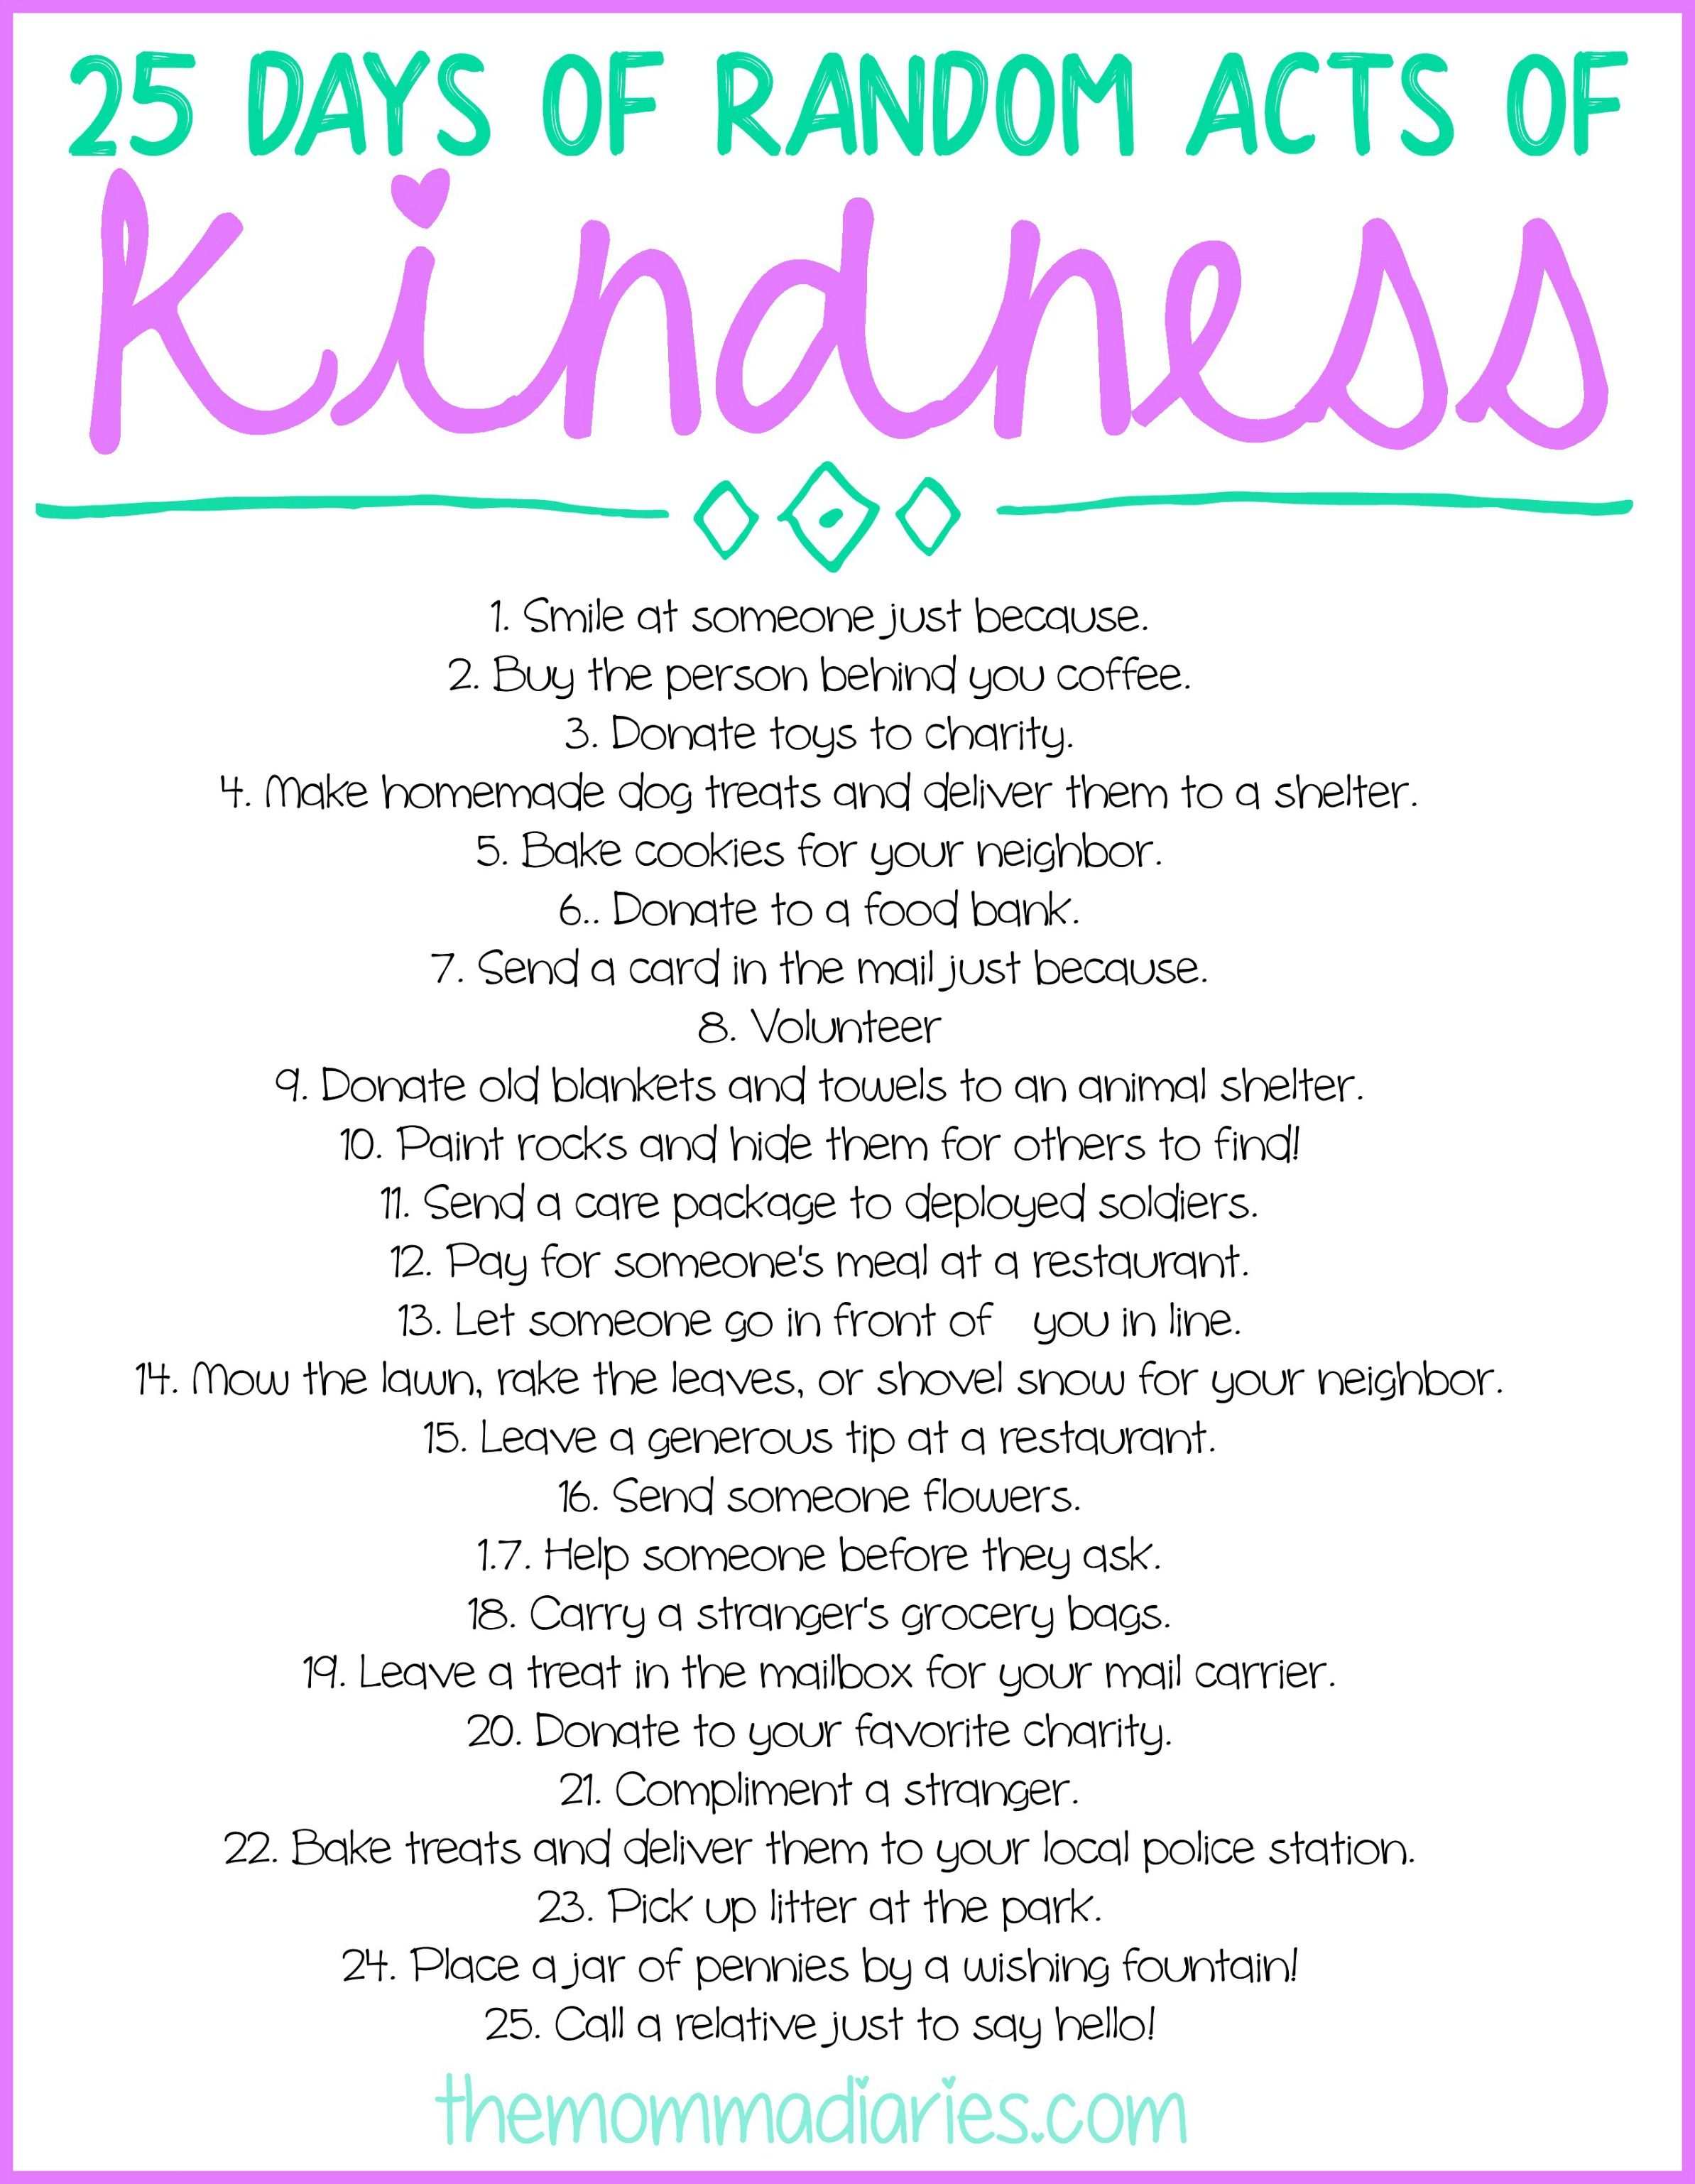 image regarding Random Act of Kindness Printable identify 25 Times of Random Functions of Kindness + Free of charge Printables! - The